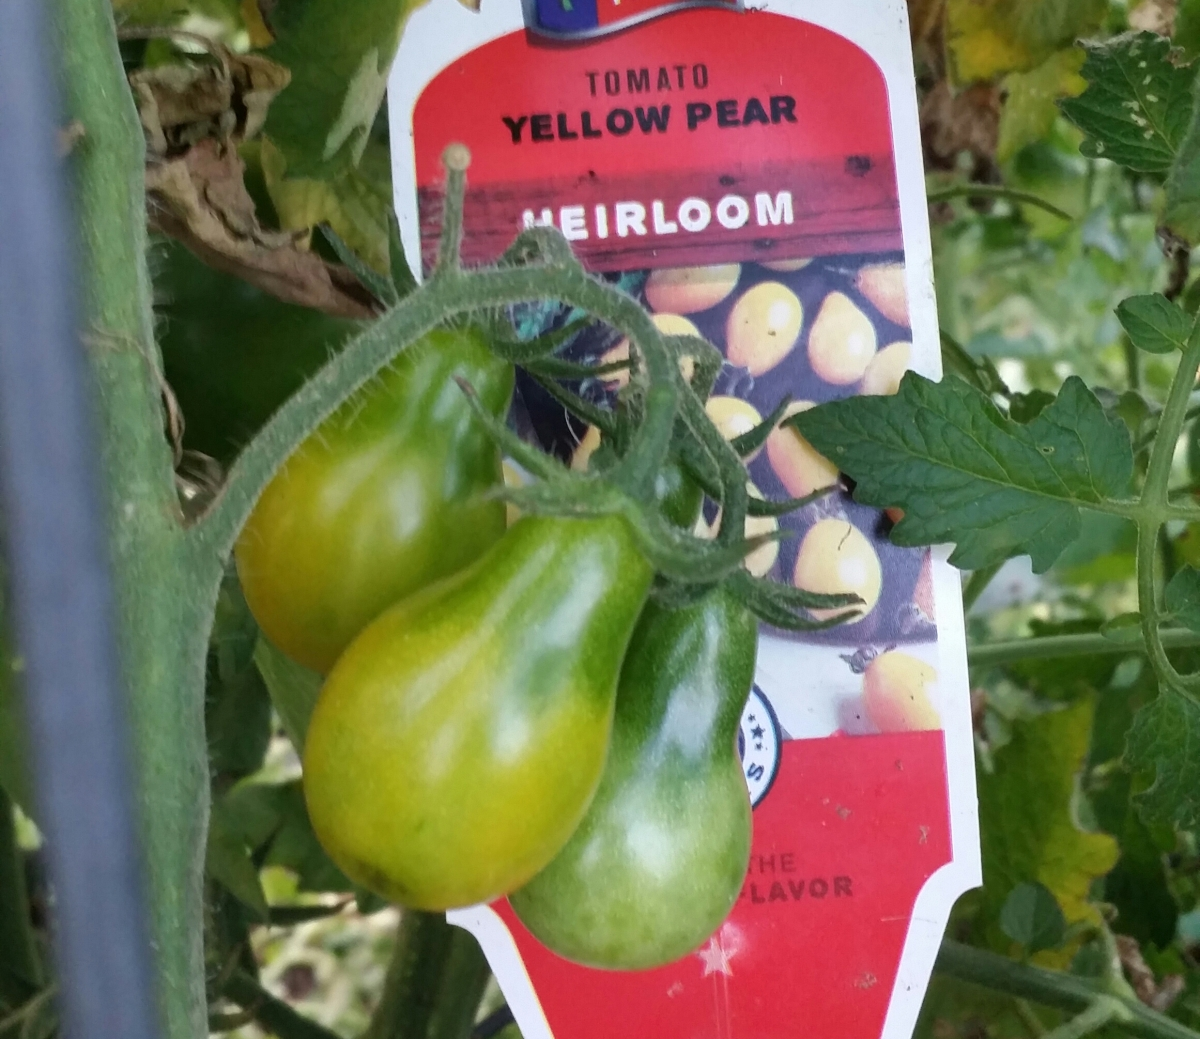 Yellow Pear, Heirloom Tomato